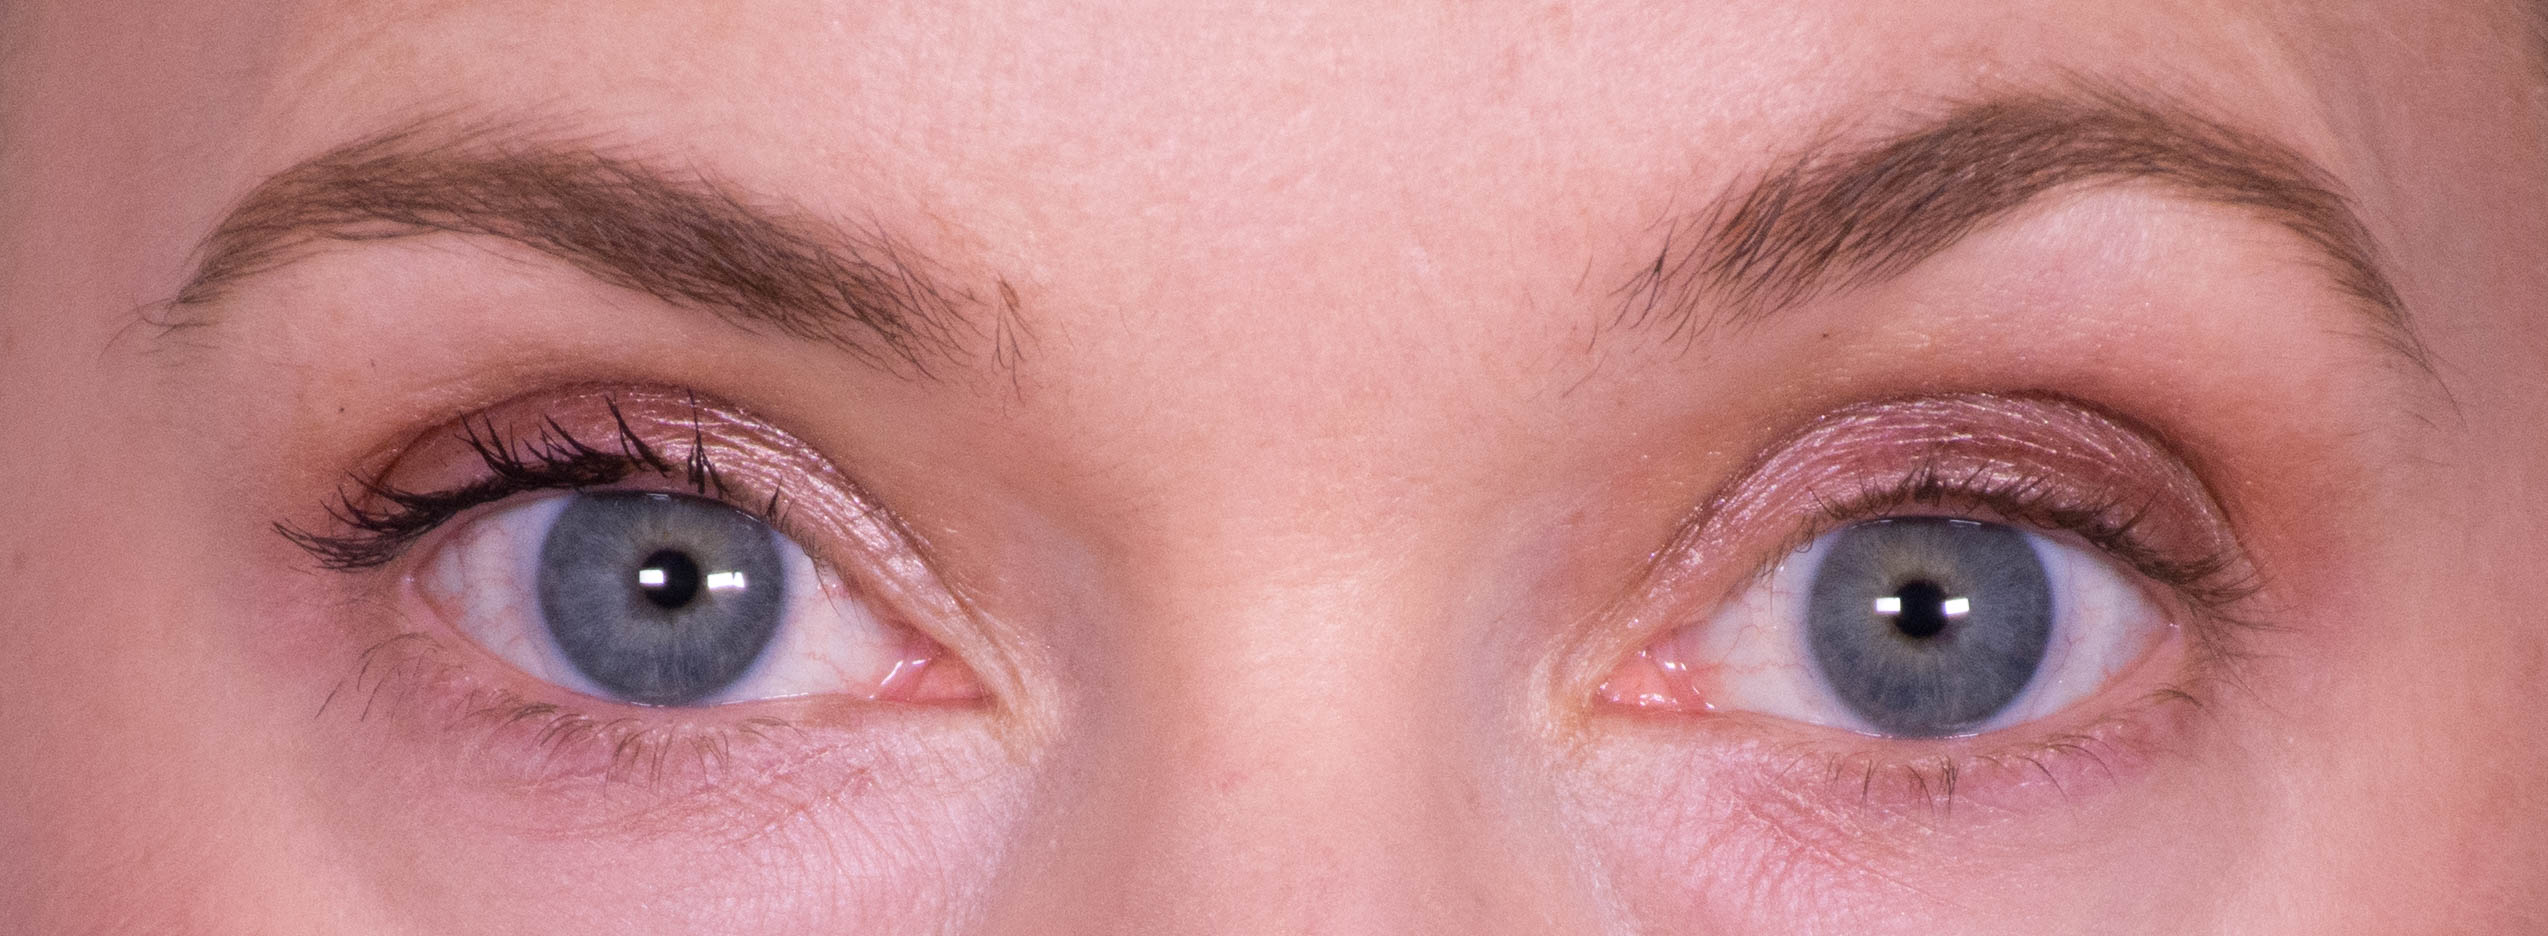 One layer of Lancome Definicils vs natural lashes